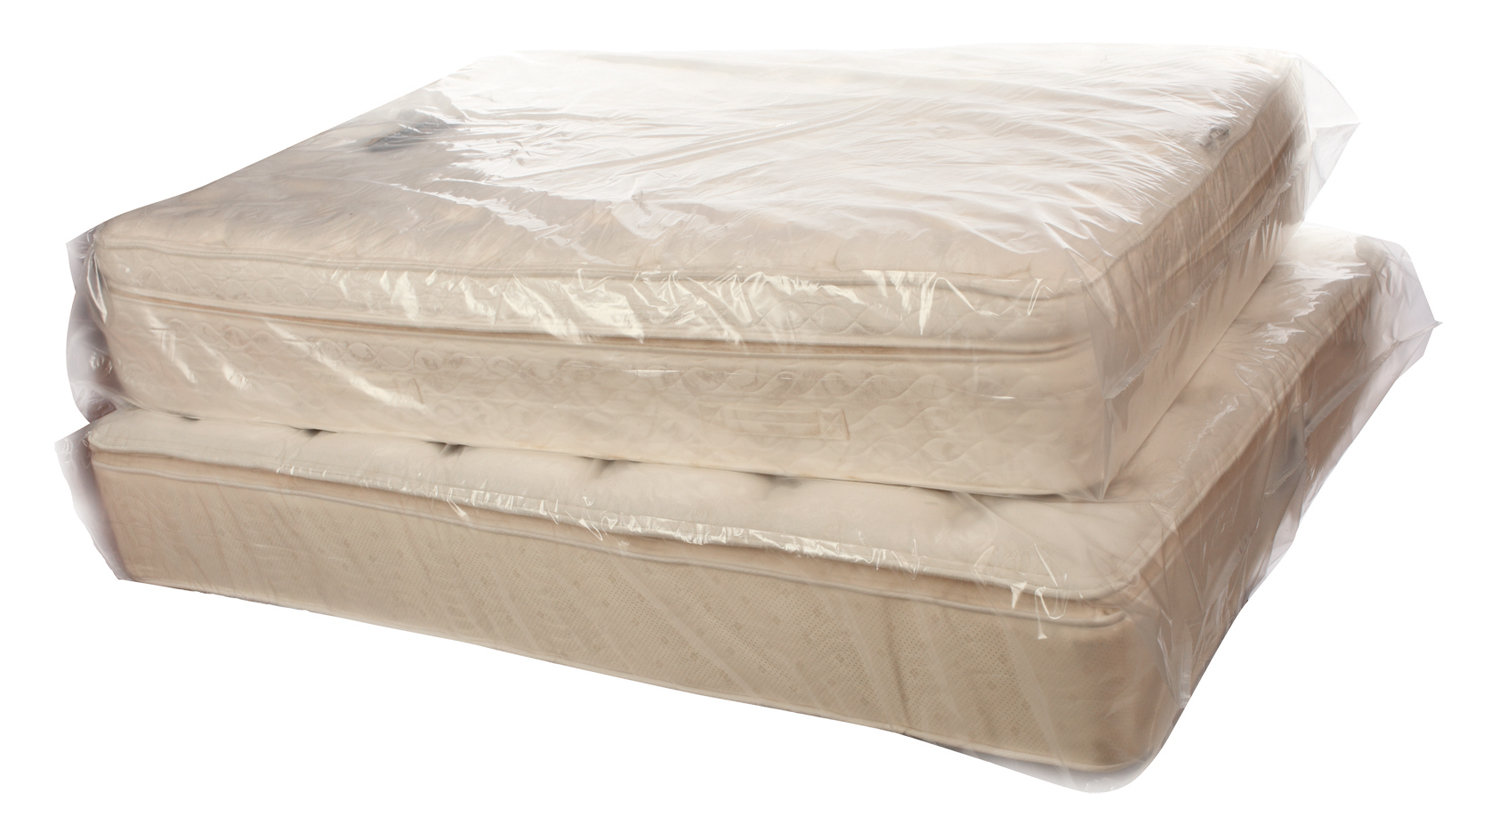 Mattress Bags Small Moves Vancouver 604 800 2715